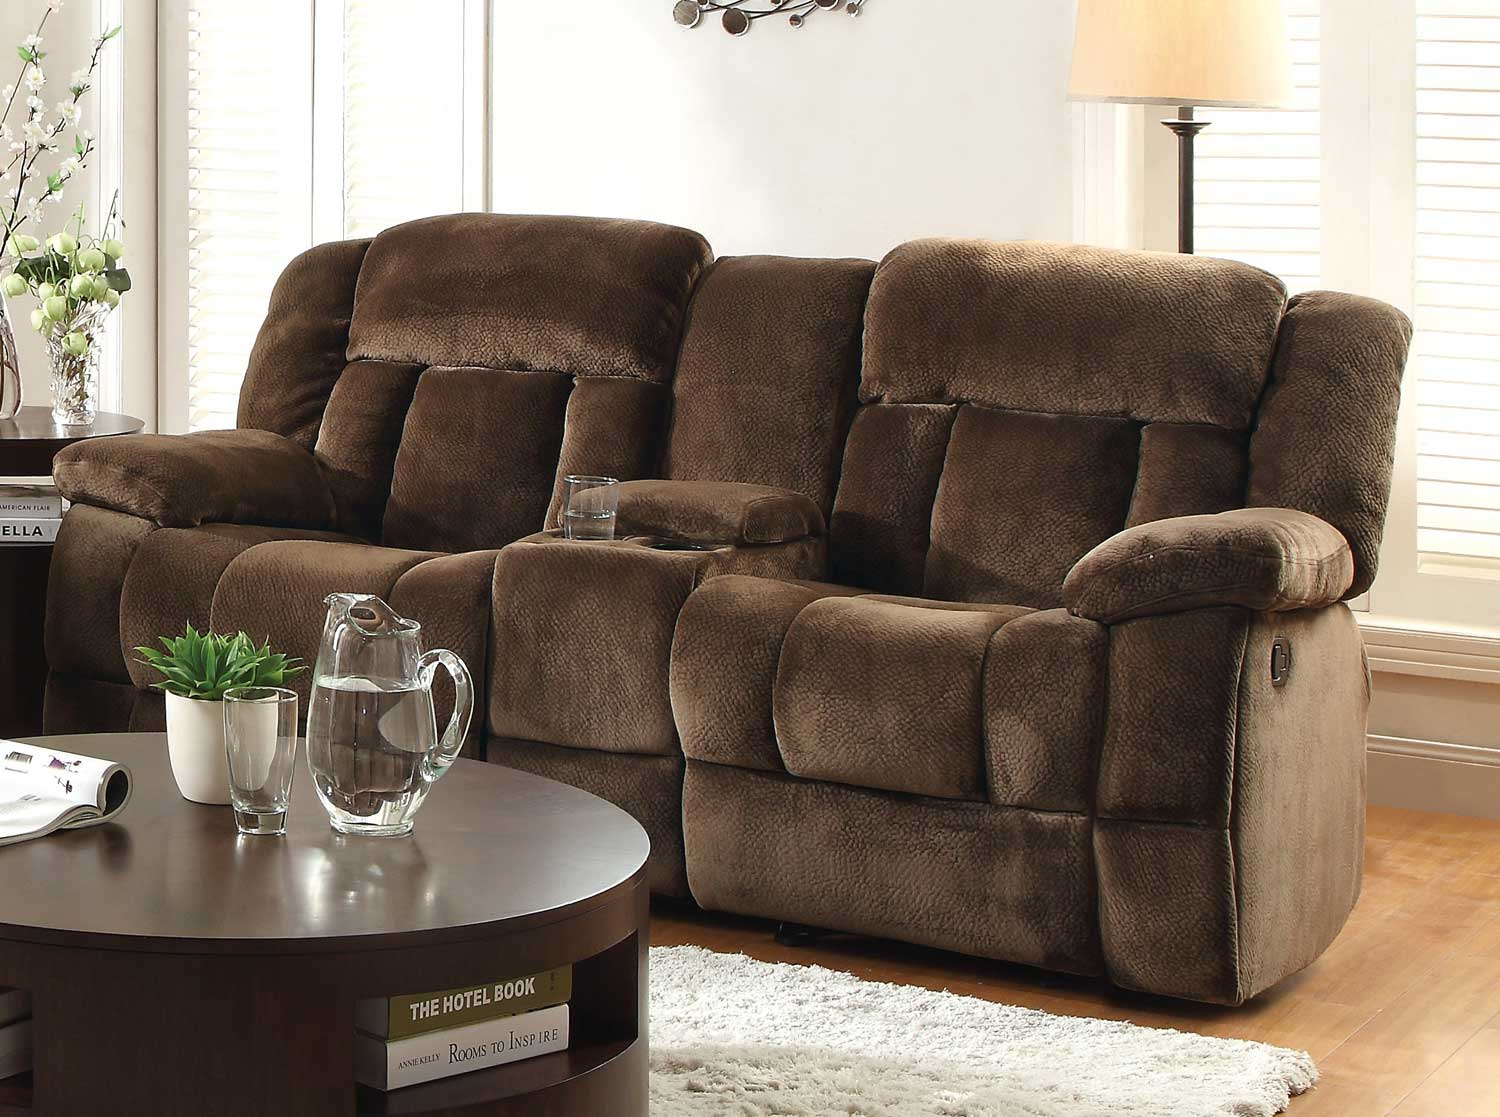 Homelegance Laurelton Reclining Sofa Set Chocolate Textured Plush Microfiber U9636 3: reclining loveseat with center console